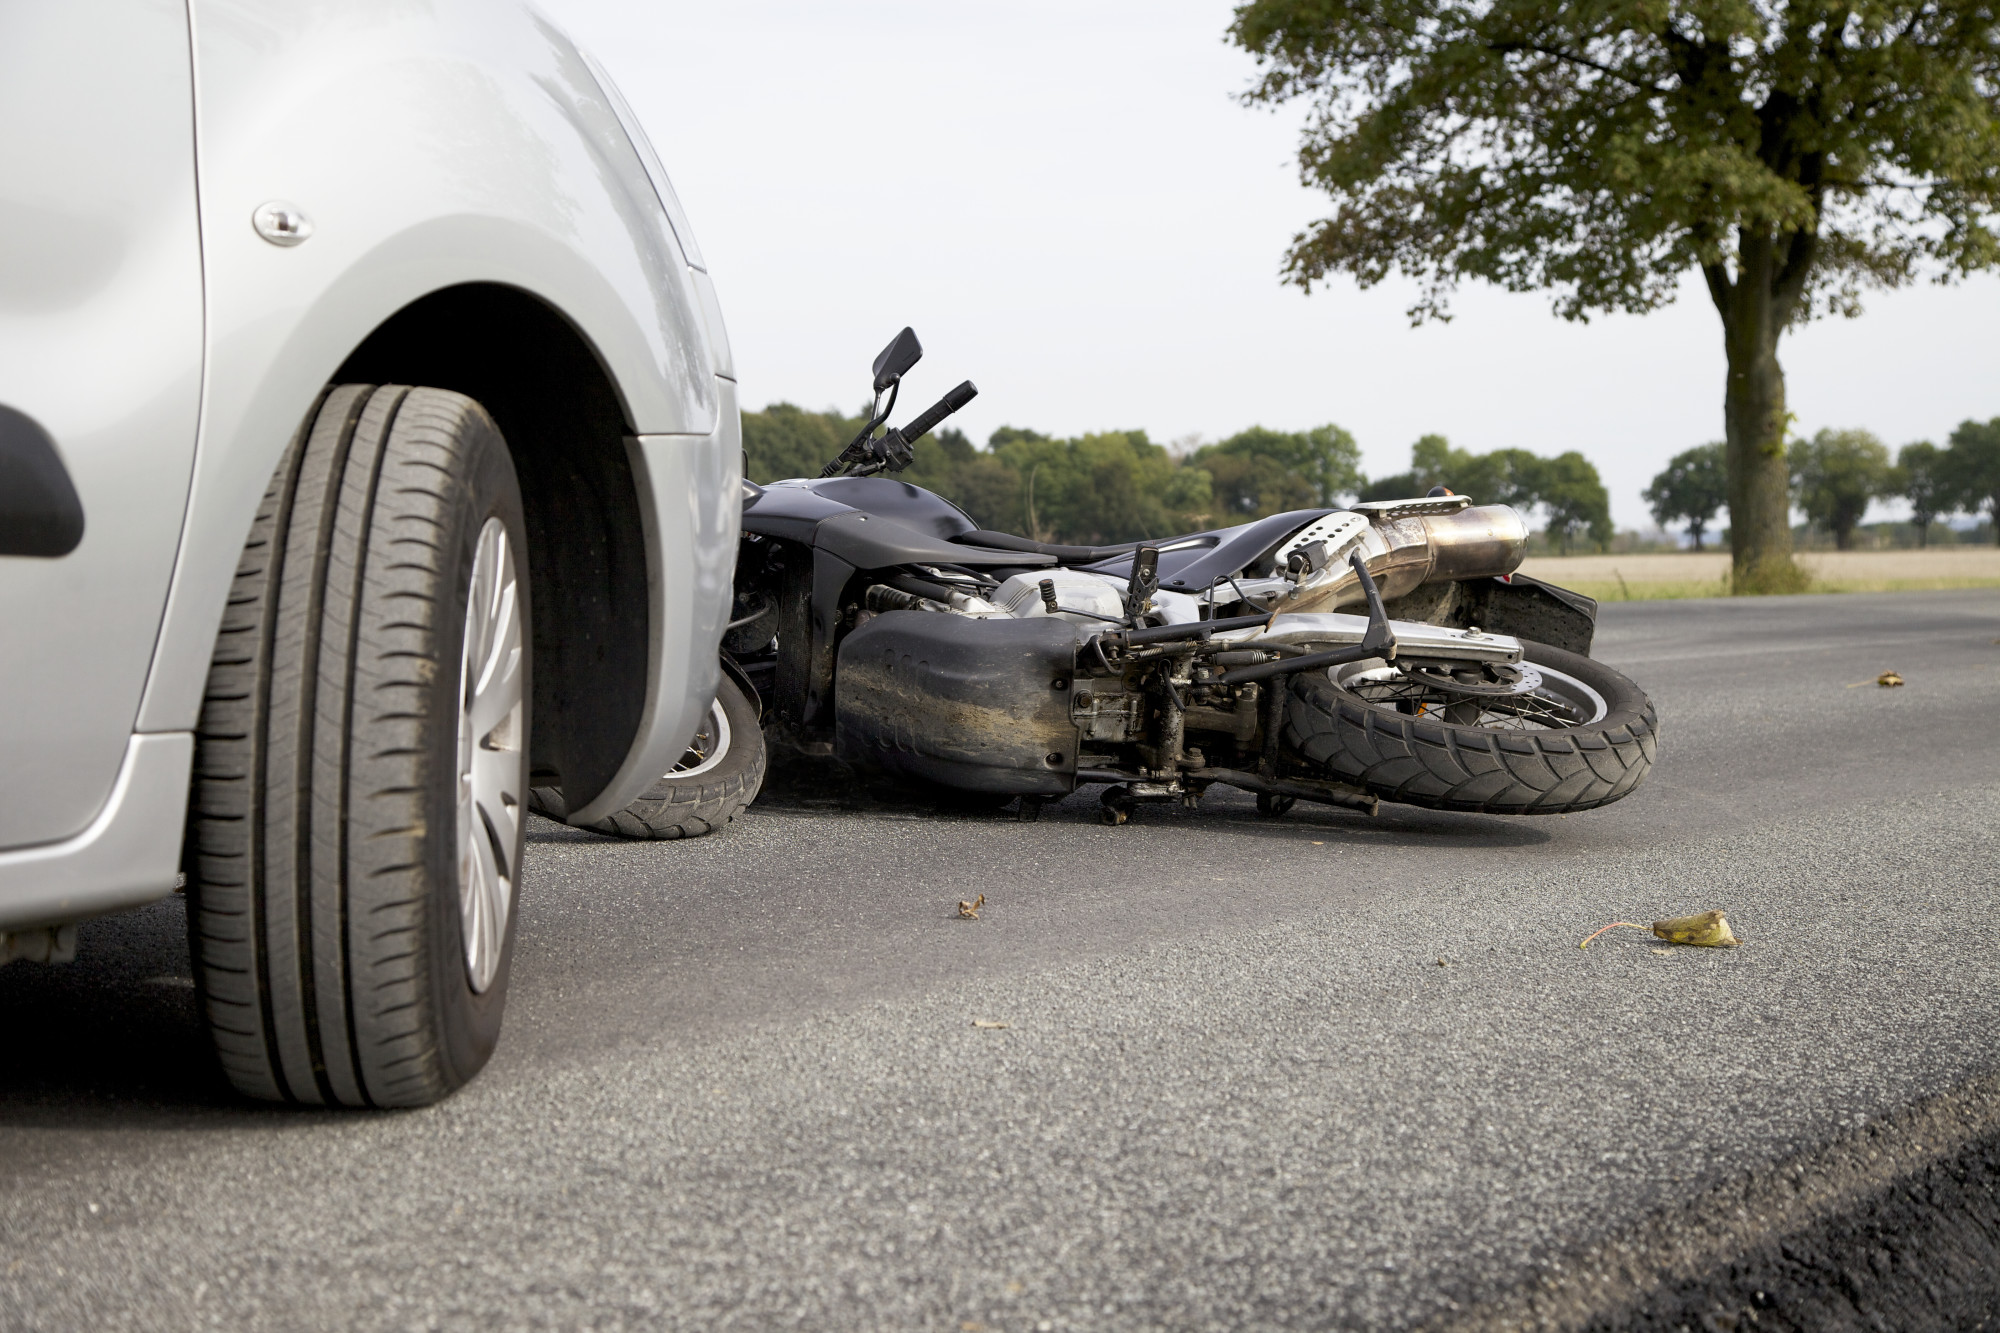 7 Things You Need to Do Immediately After a Motorcycle Accident in Tampa